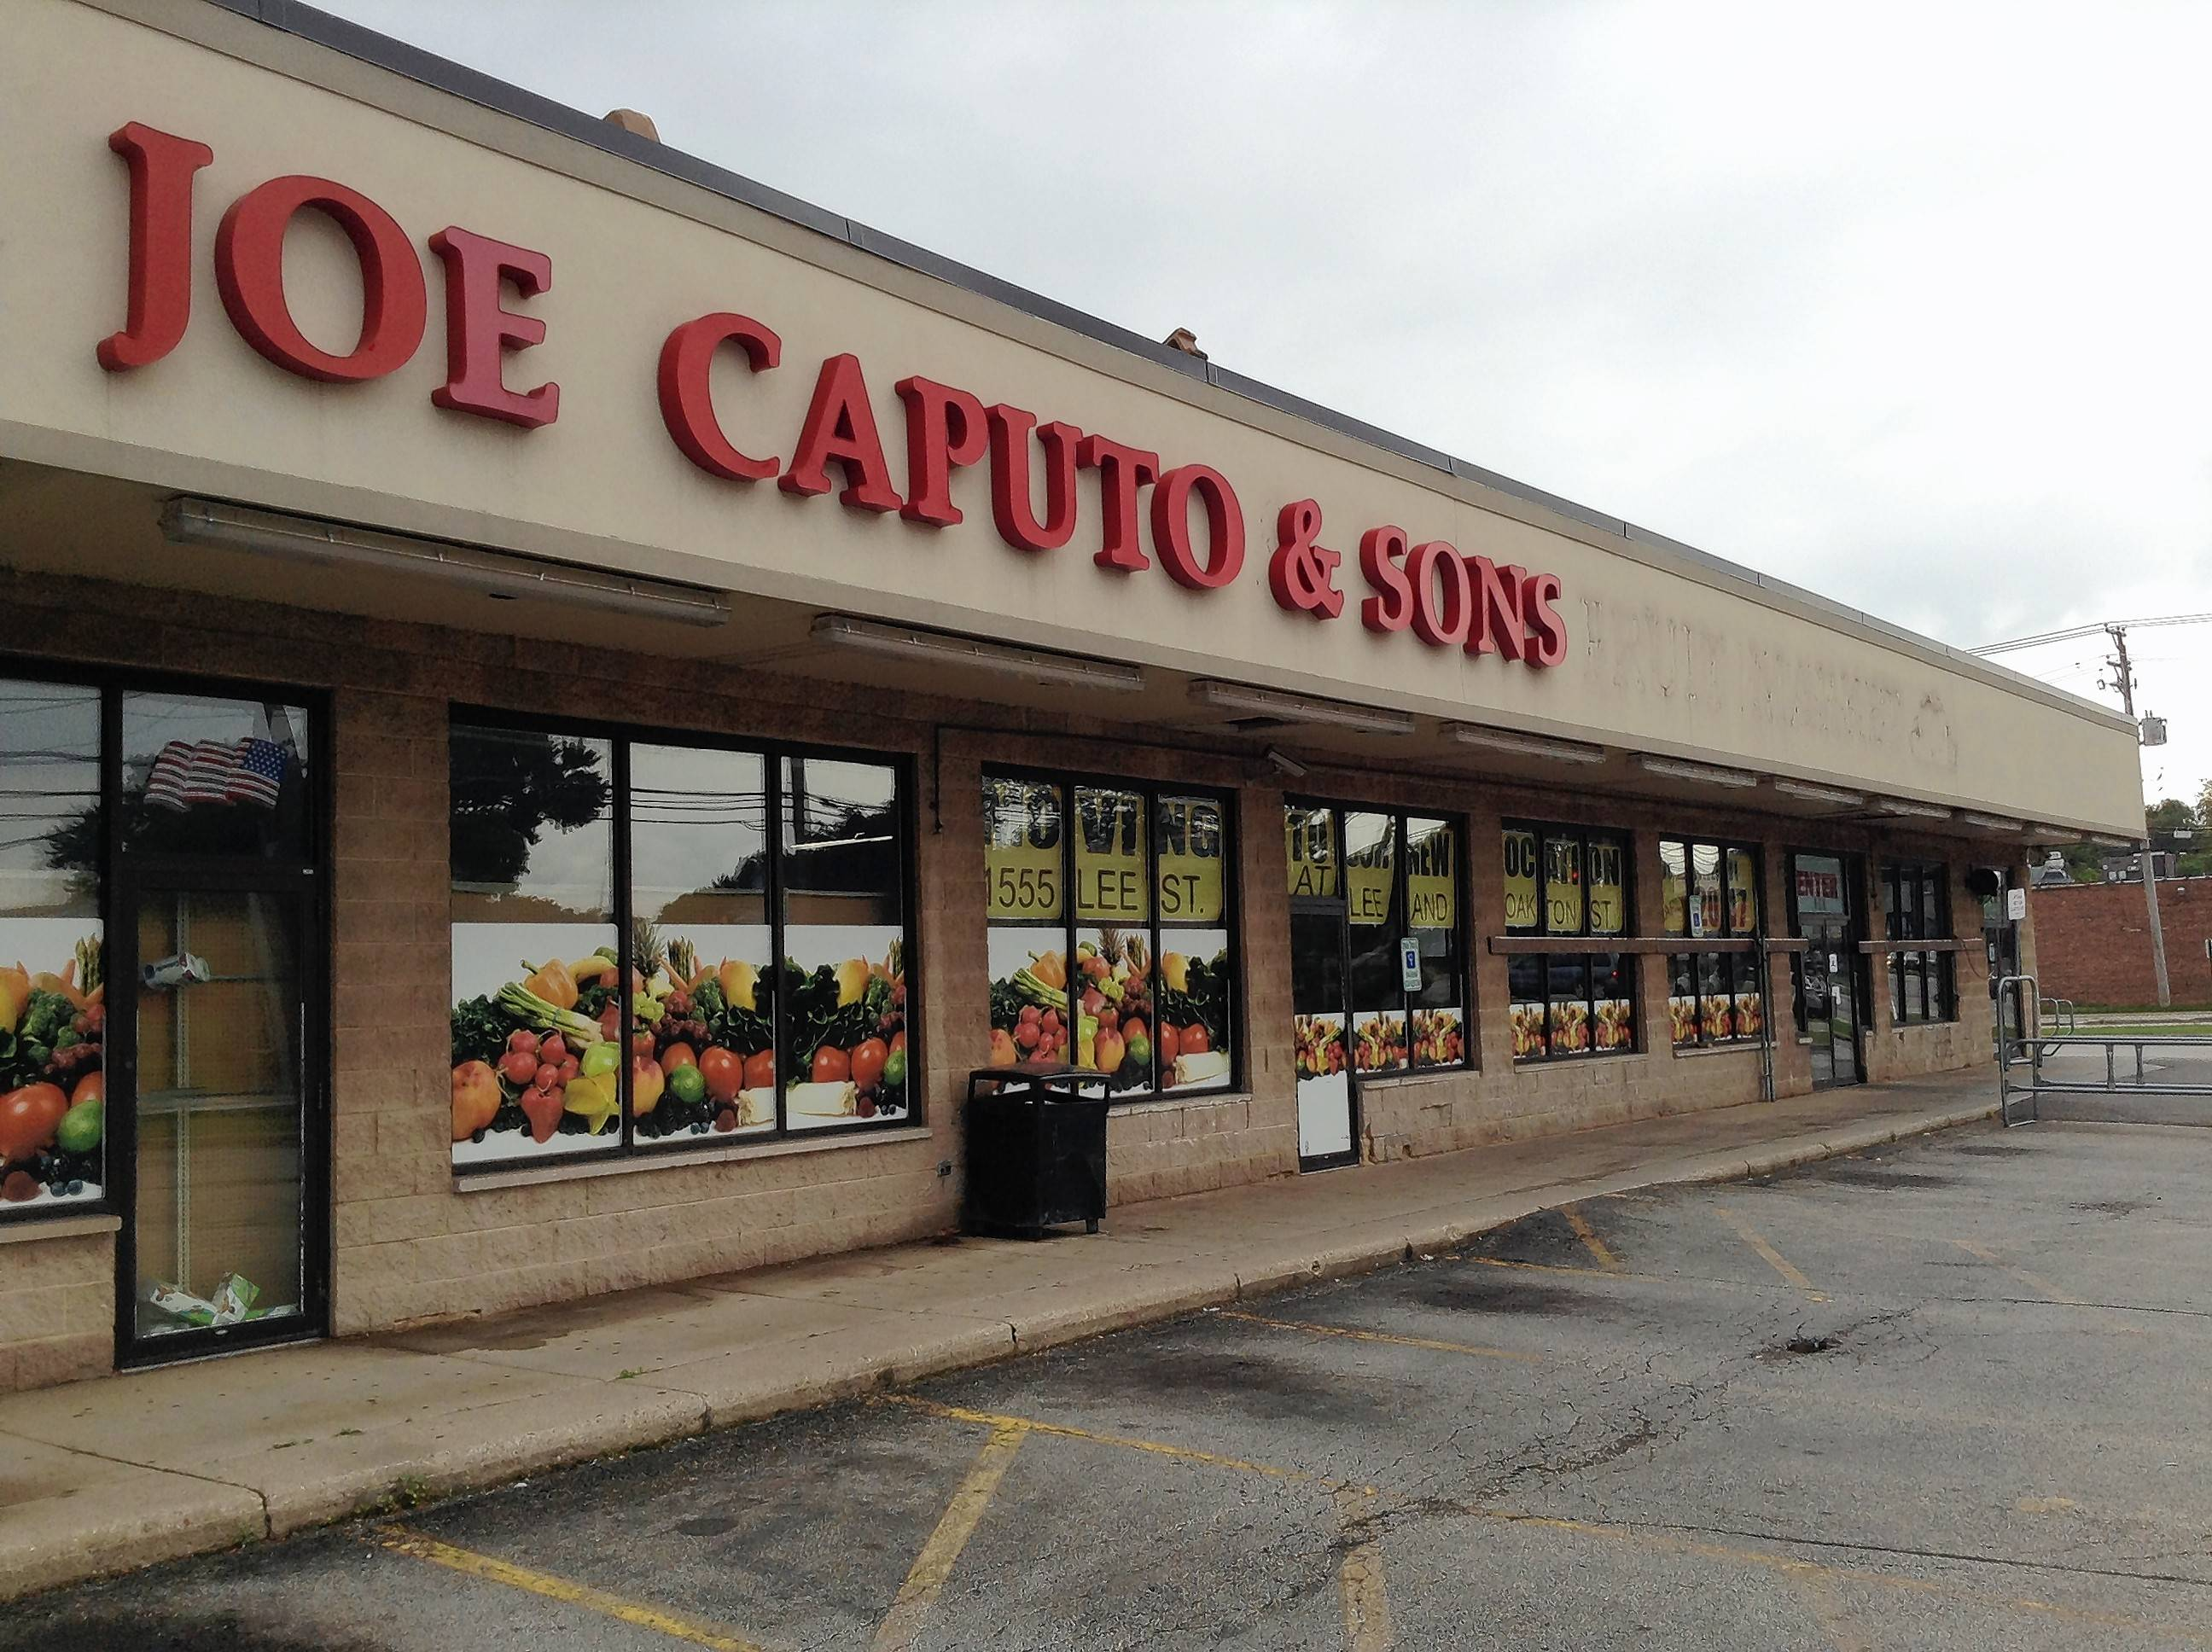 Joe Caputo & Sons Fruit Market closed this week after 27 years of business on Oakton Street in Des Plaines.